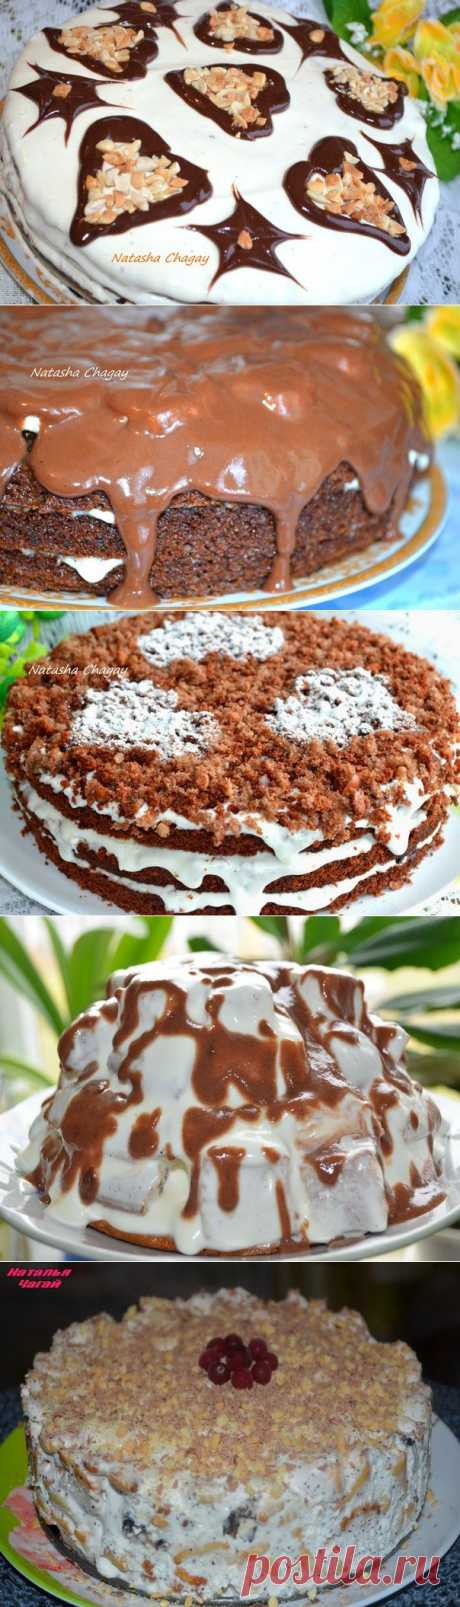 Super cakes from Natasha Chagay!!! - Simple recipes of Овкусе.ру